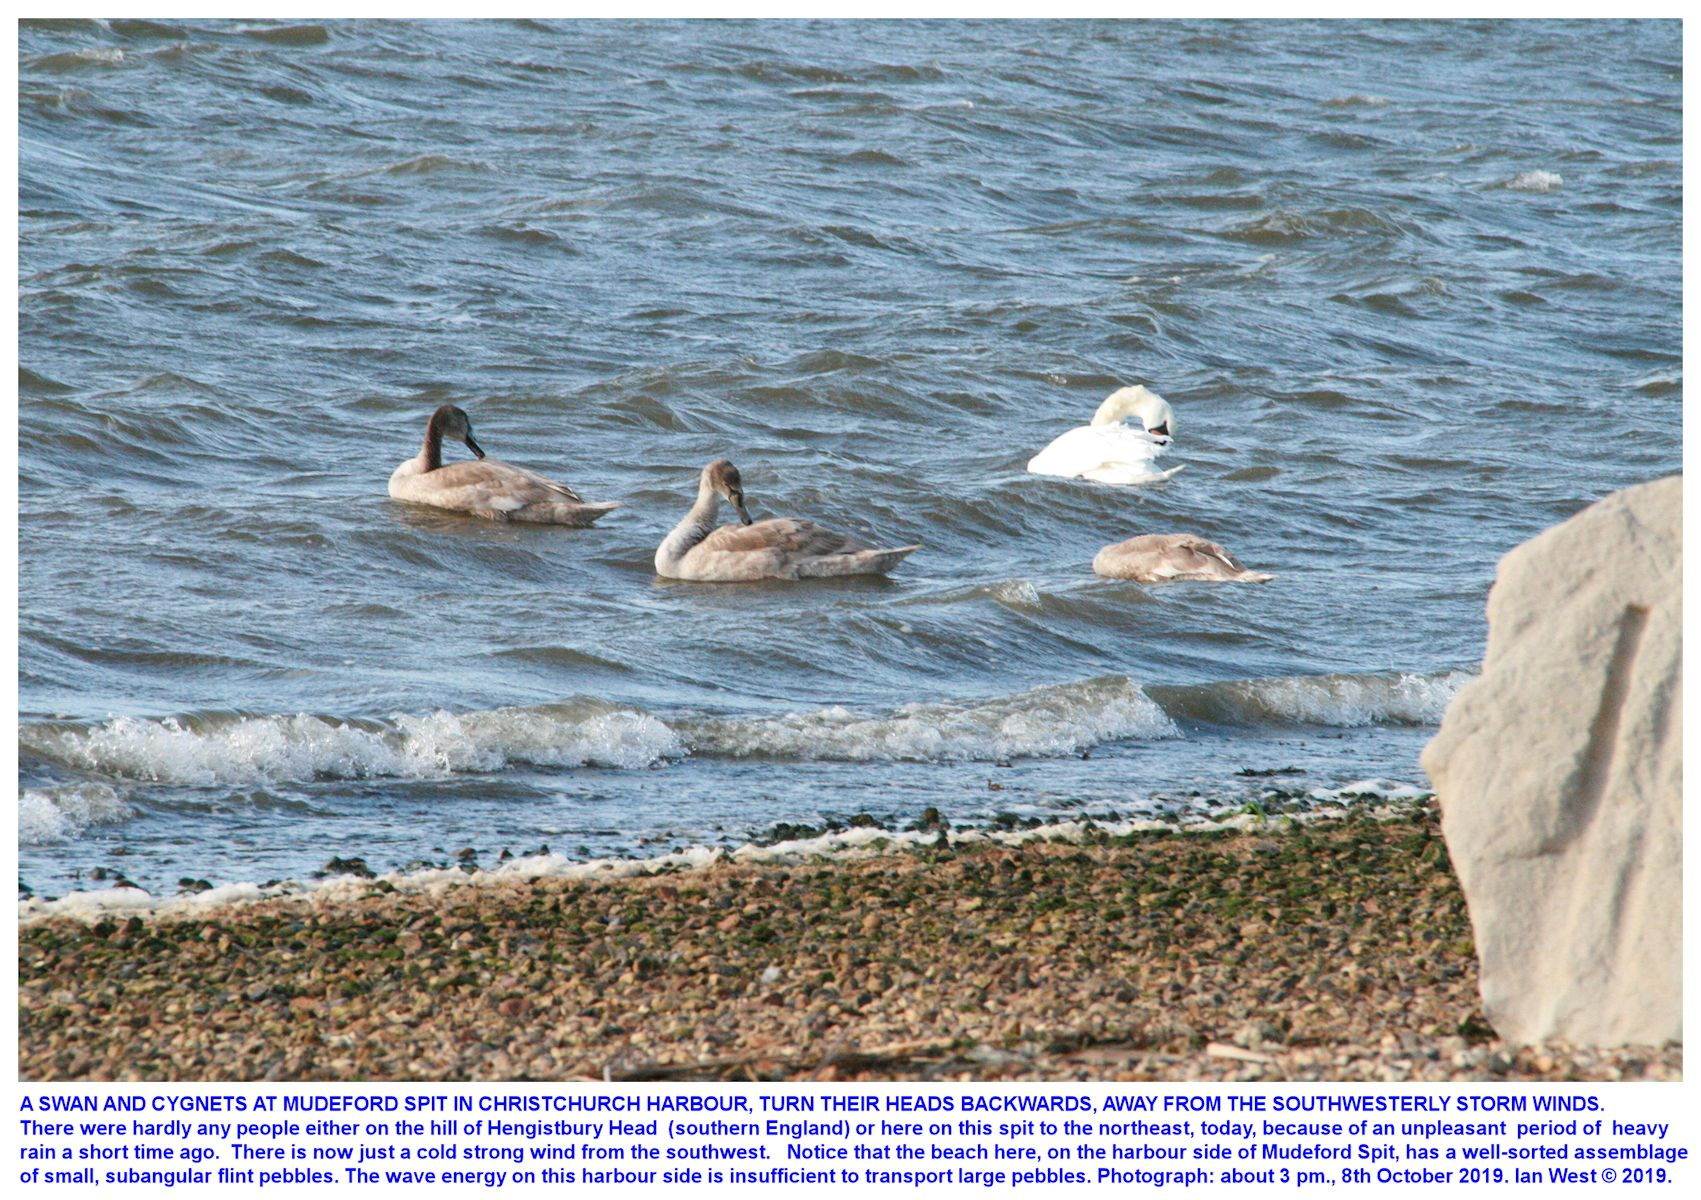 Swans on the Christchurch Harbour side of Mudeford Spit, look backwards away from the wind in stormy weather